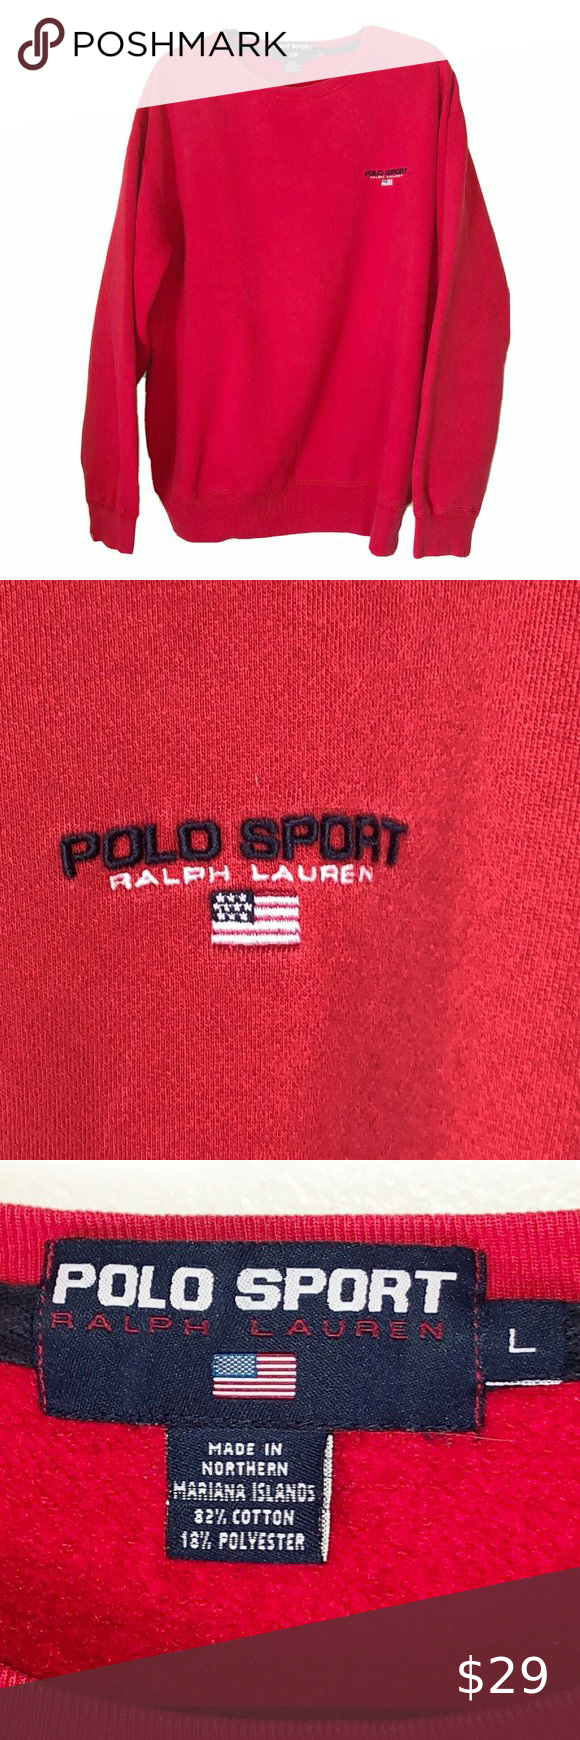 Vintage 90s Polo Sport Flag Spell Out Sweatshirt L Vintage 1990s Ralph Lauren Polo Sport Sweatshirt Red Em Sweatshirt Shirt Sweatshirts Sports Sweatshirts